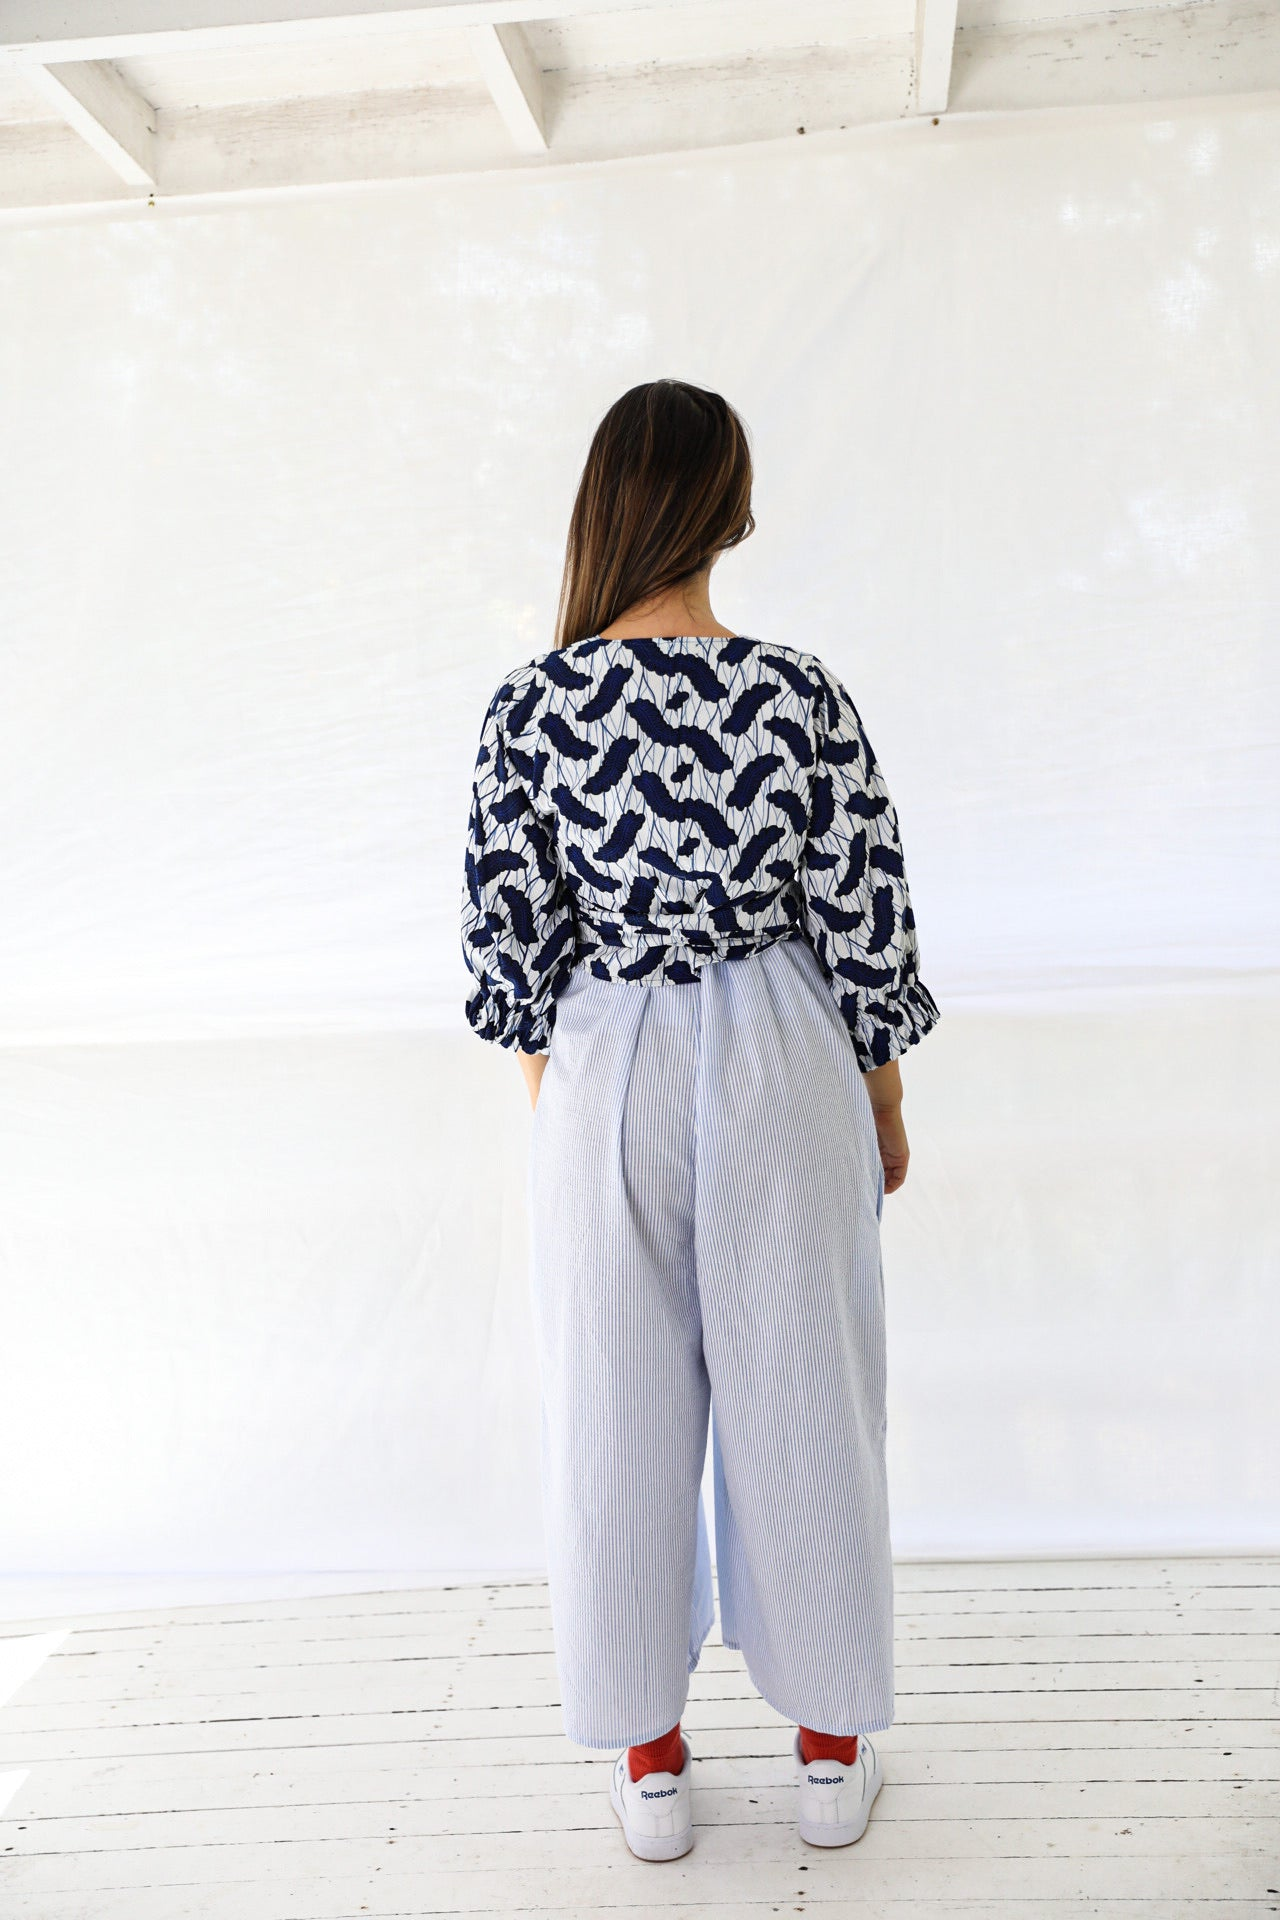 Wrap Tie Top in Navy fern